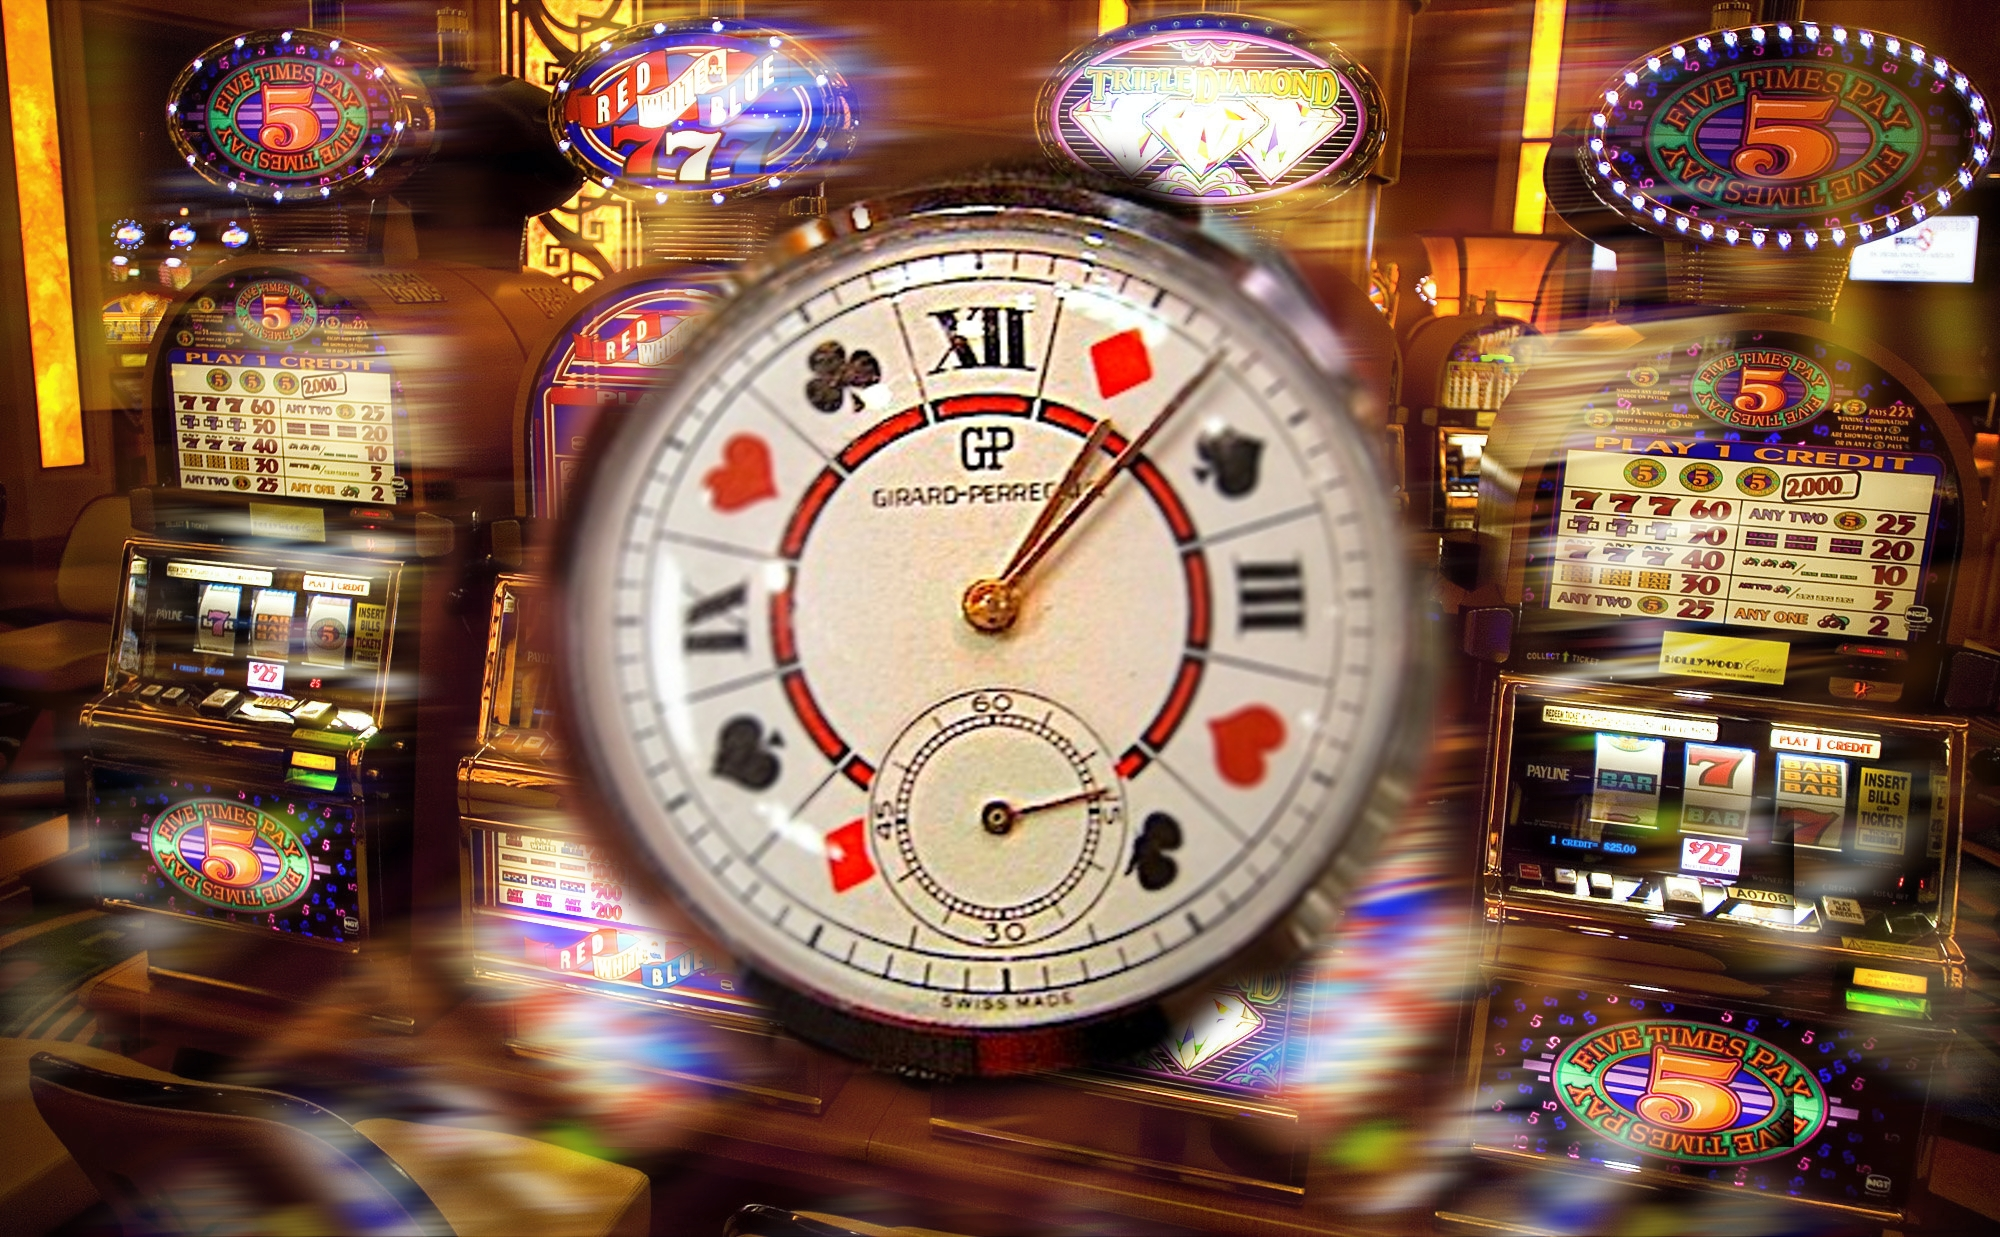 Casino time no deposit coupon codes for casinos